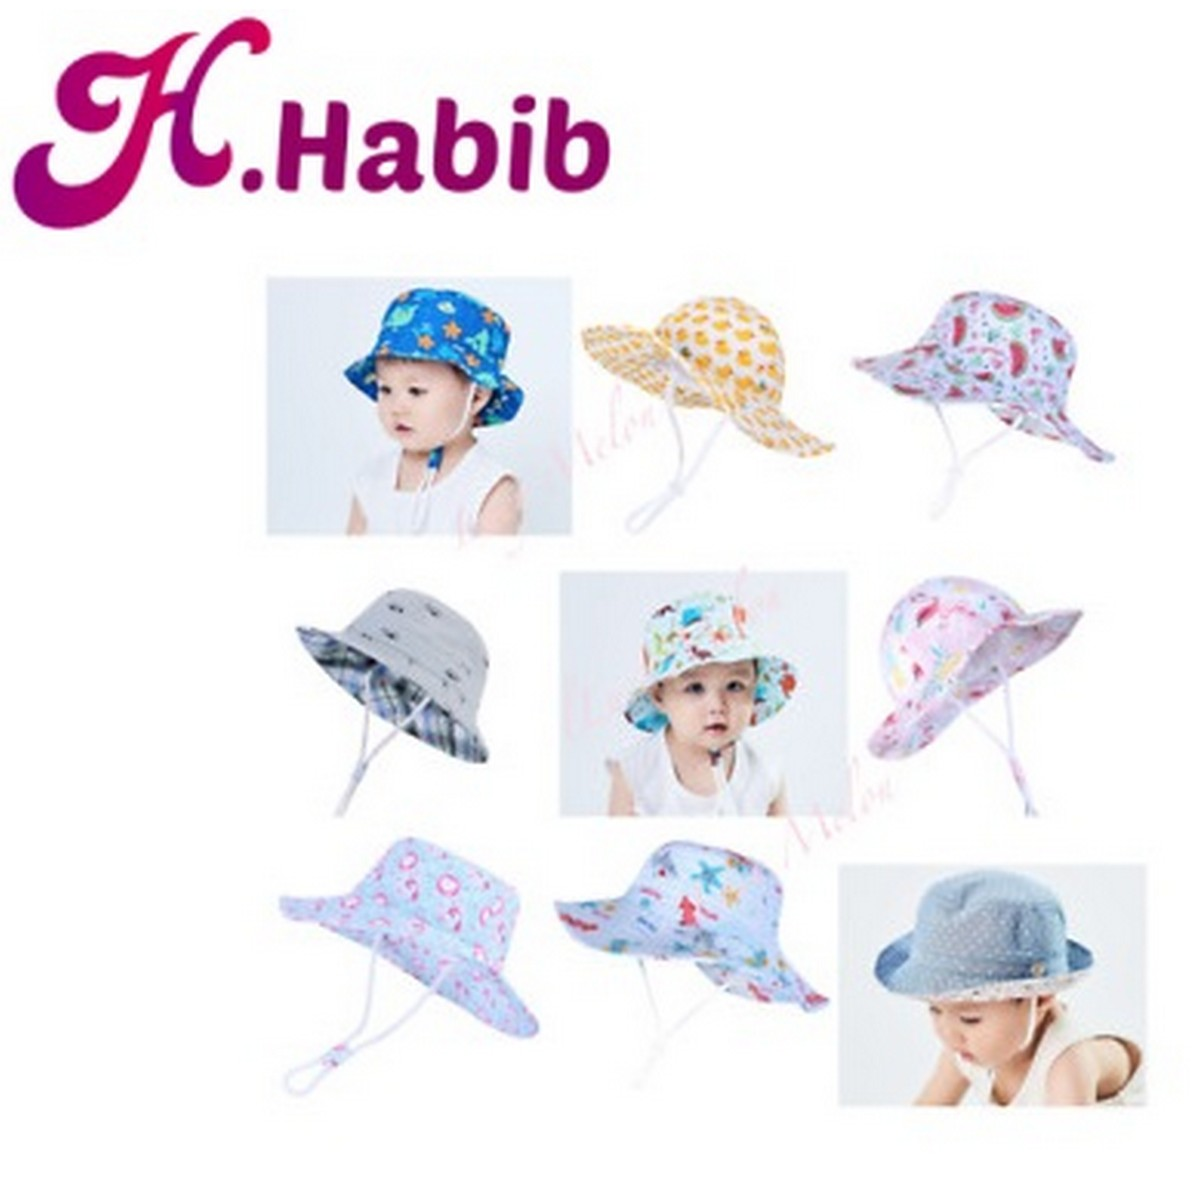 Polka Dot Hat Soft Summer Baby Sun Cap Girls Cotton Hat Baby Bucket Hat for 3 months to 3 Year Babies Random Prints Random Colors Baby Hat for Summer for Infants toddler